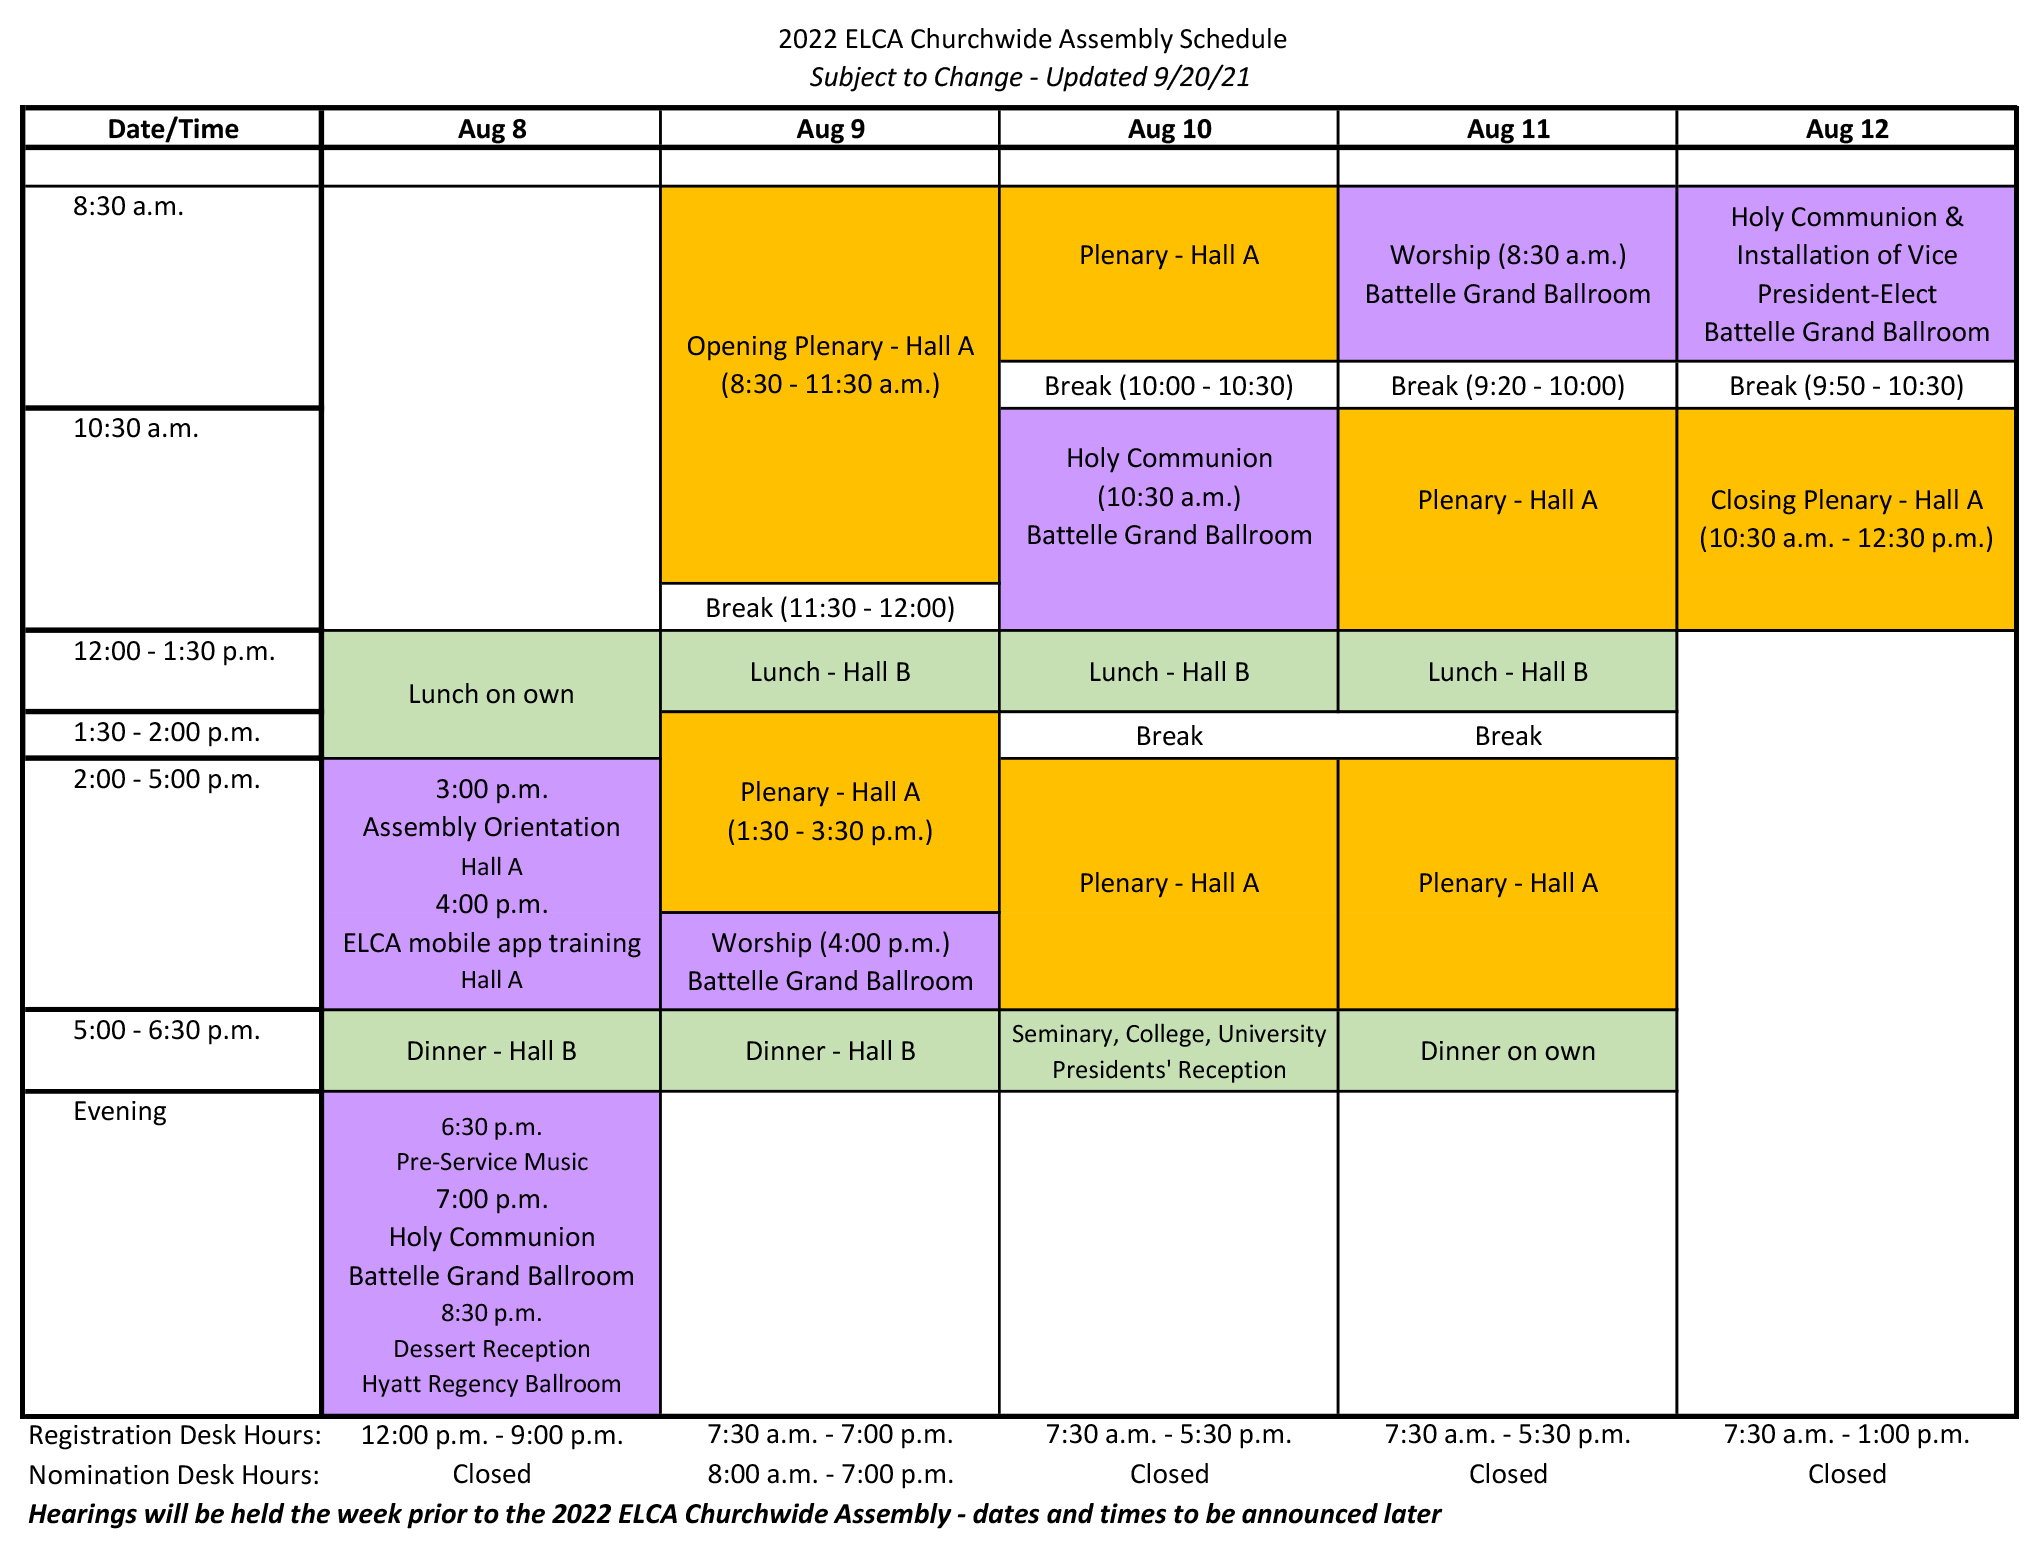 2022 Churchwide Assembly Schedule